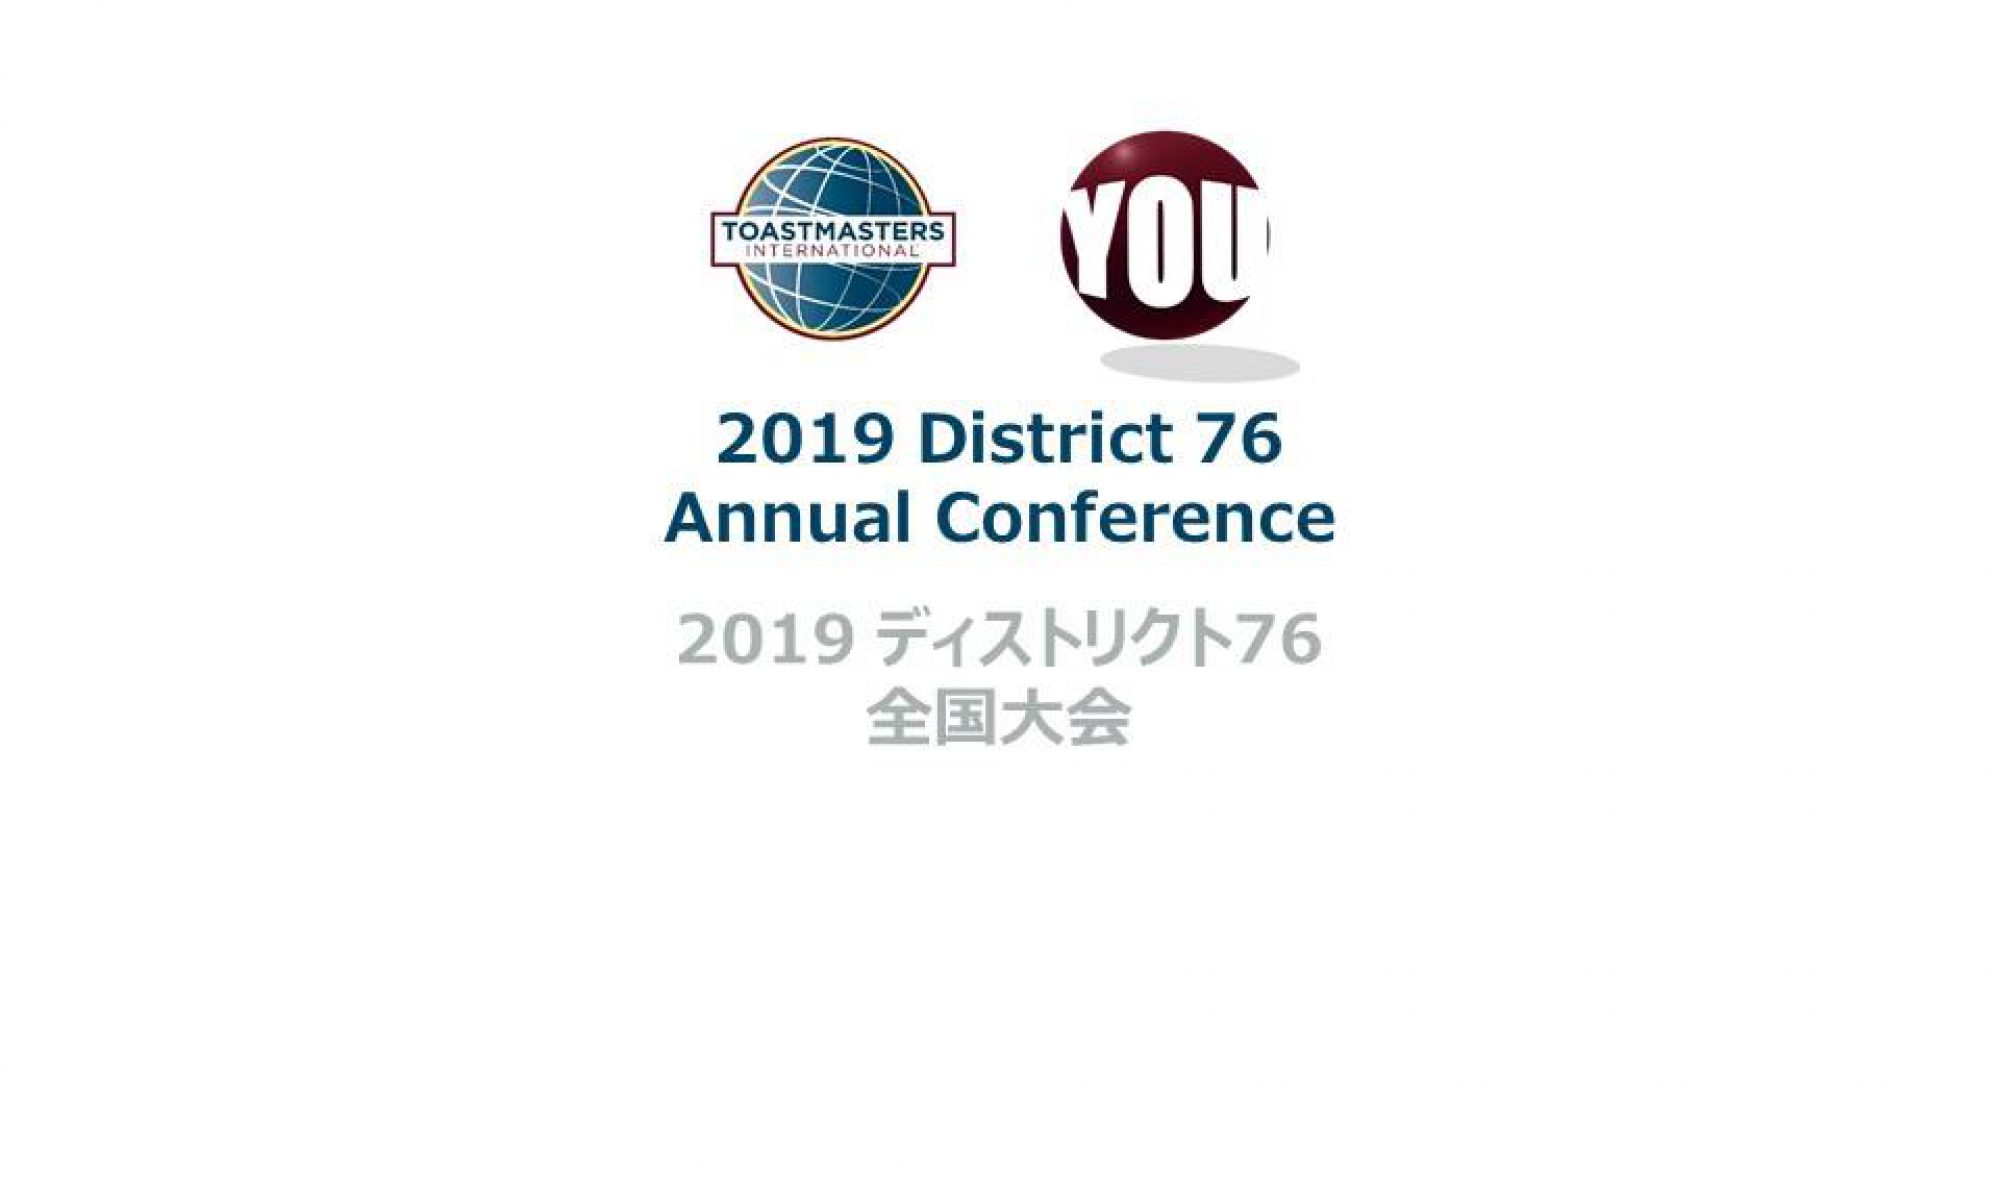 2019 District 76 Annual Conference